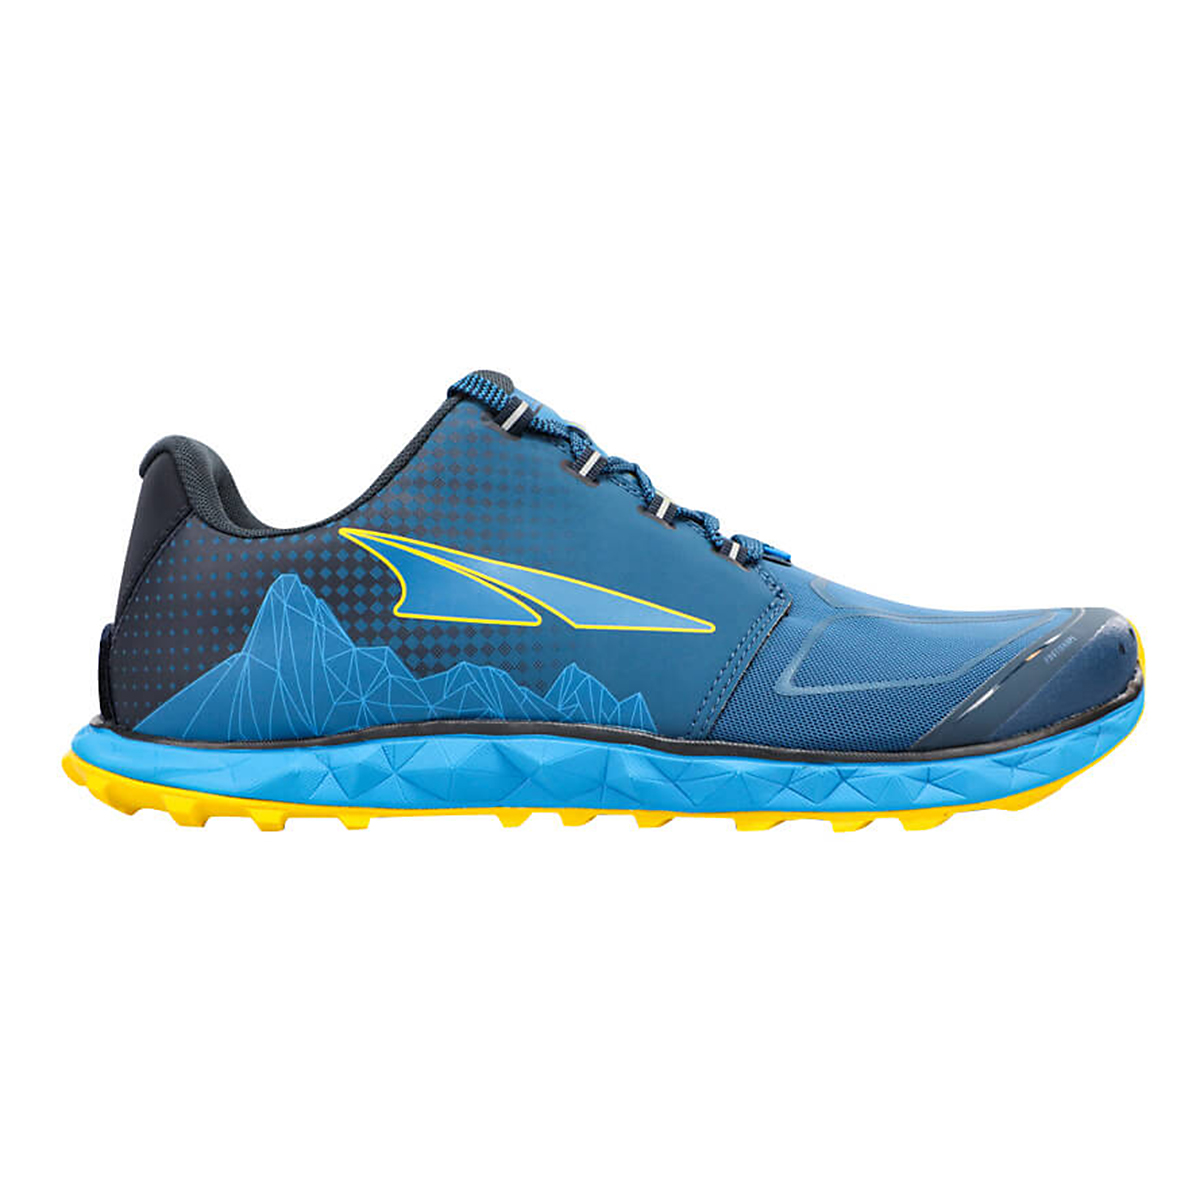 Men's Altra Superior 4.5 Trail Running Shoe - Color: Blue/Yellow - Size: 7 - Width: Regular, Blue/Yellow, large, image 1